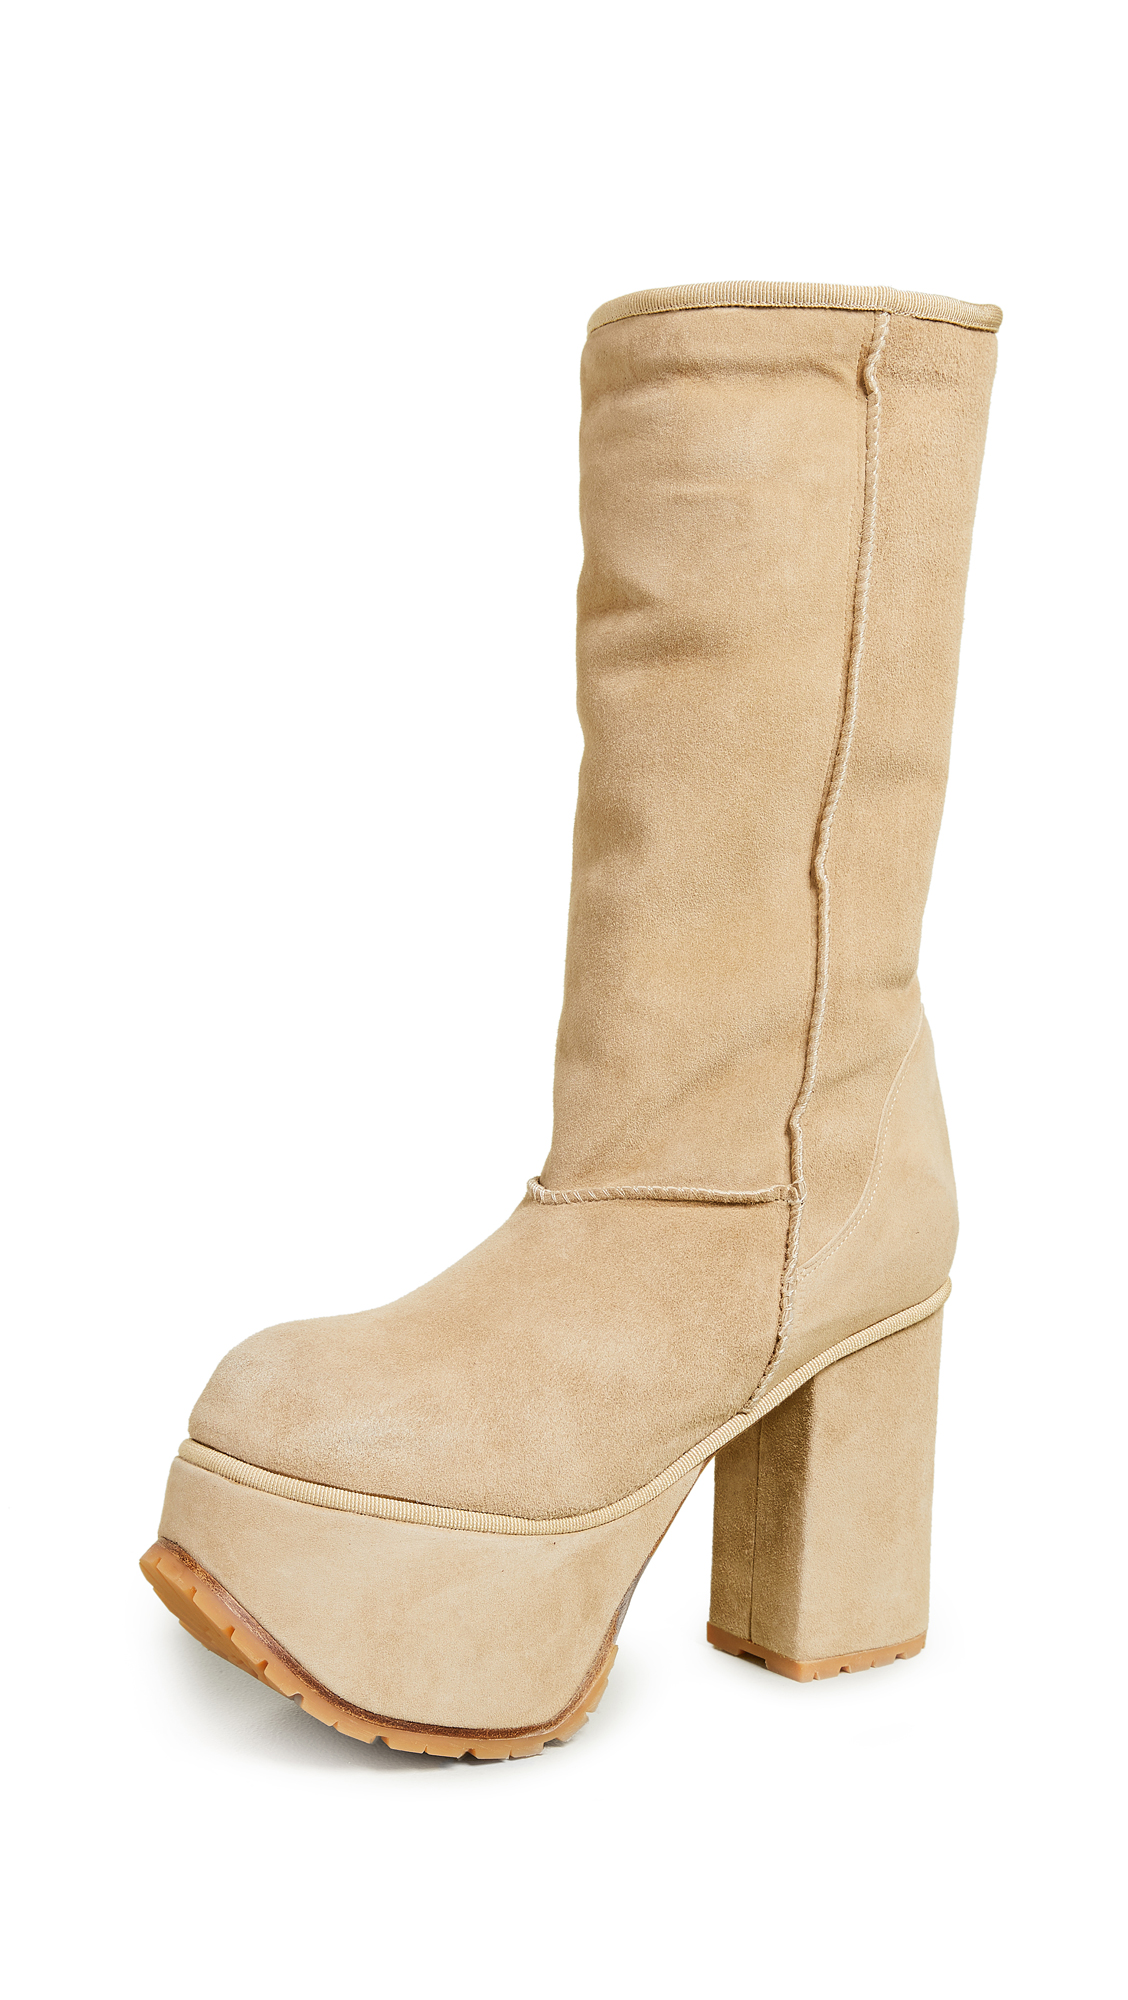 R13 Shearling Tall Platform Boots - Tan